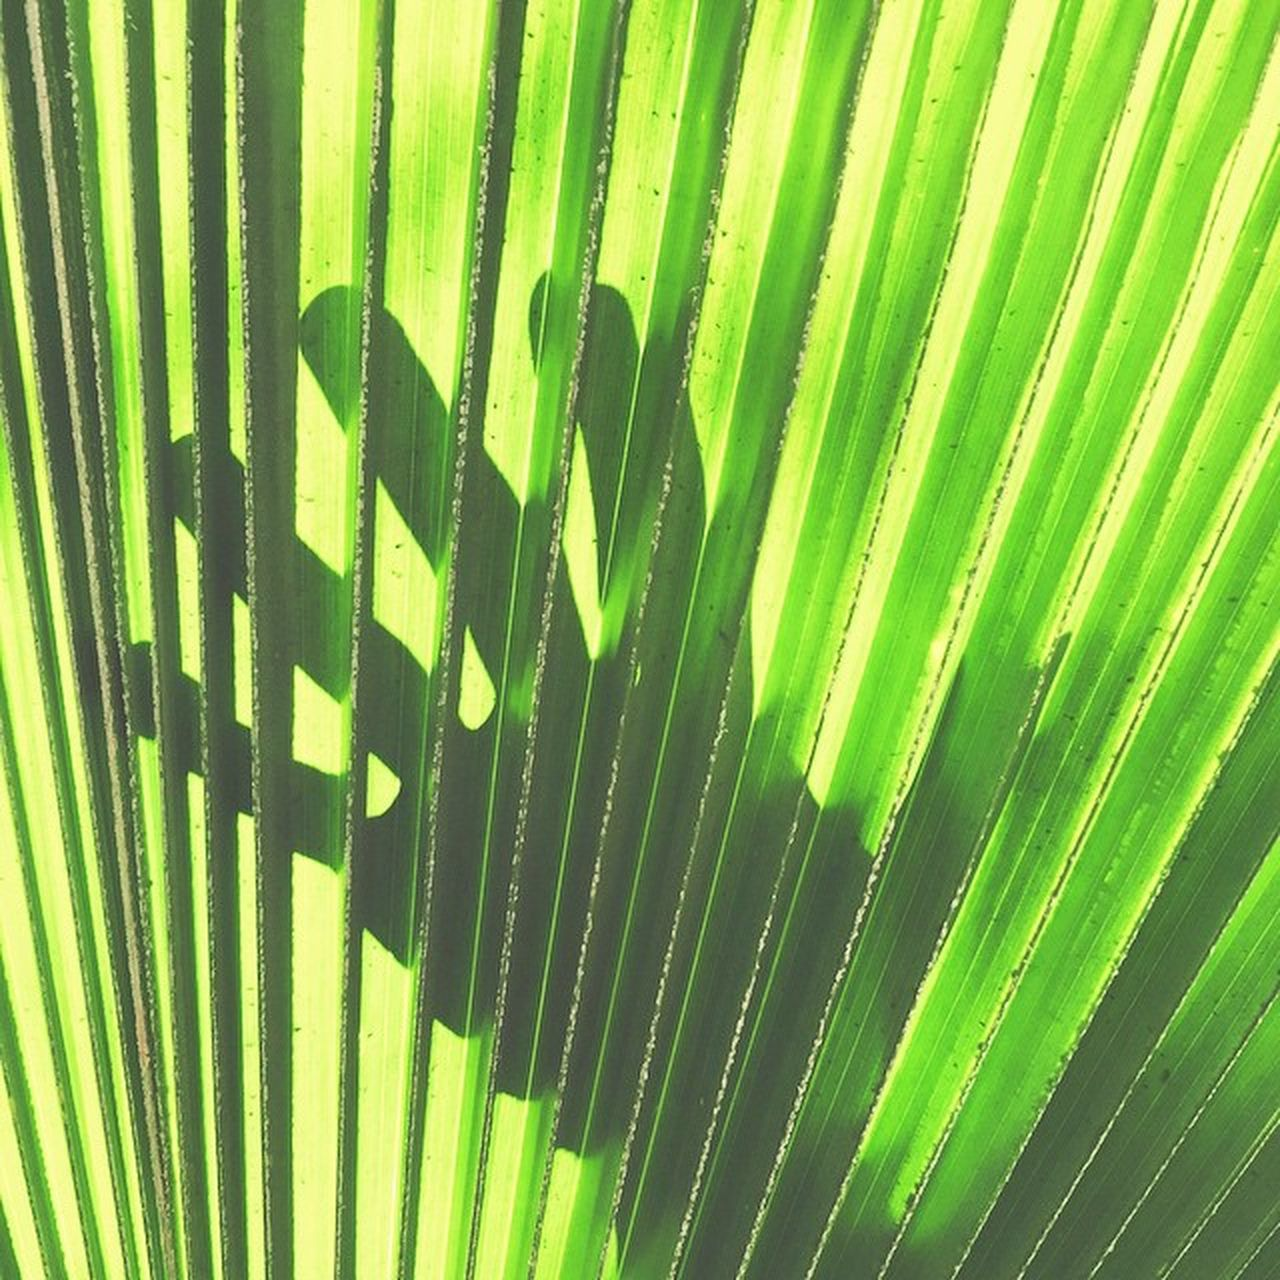 striped, palm leaf, green color, close-up, pattern, no people, day, backgrounds, outdoors, growth, palm tree, frond, nature